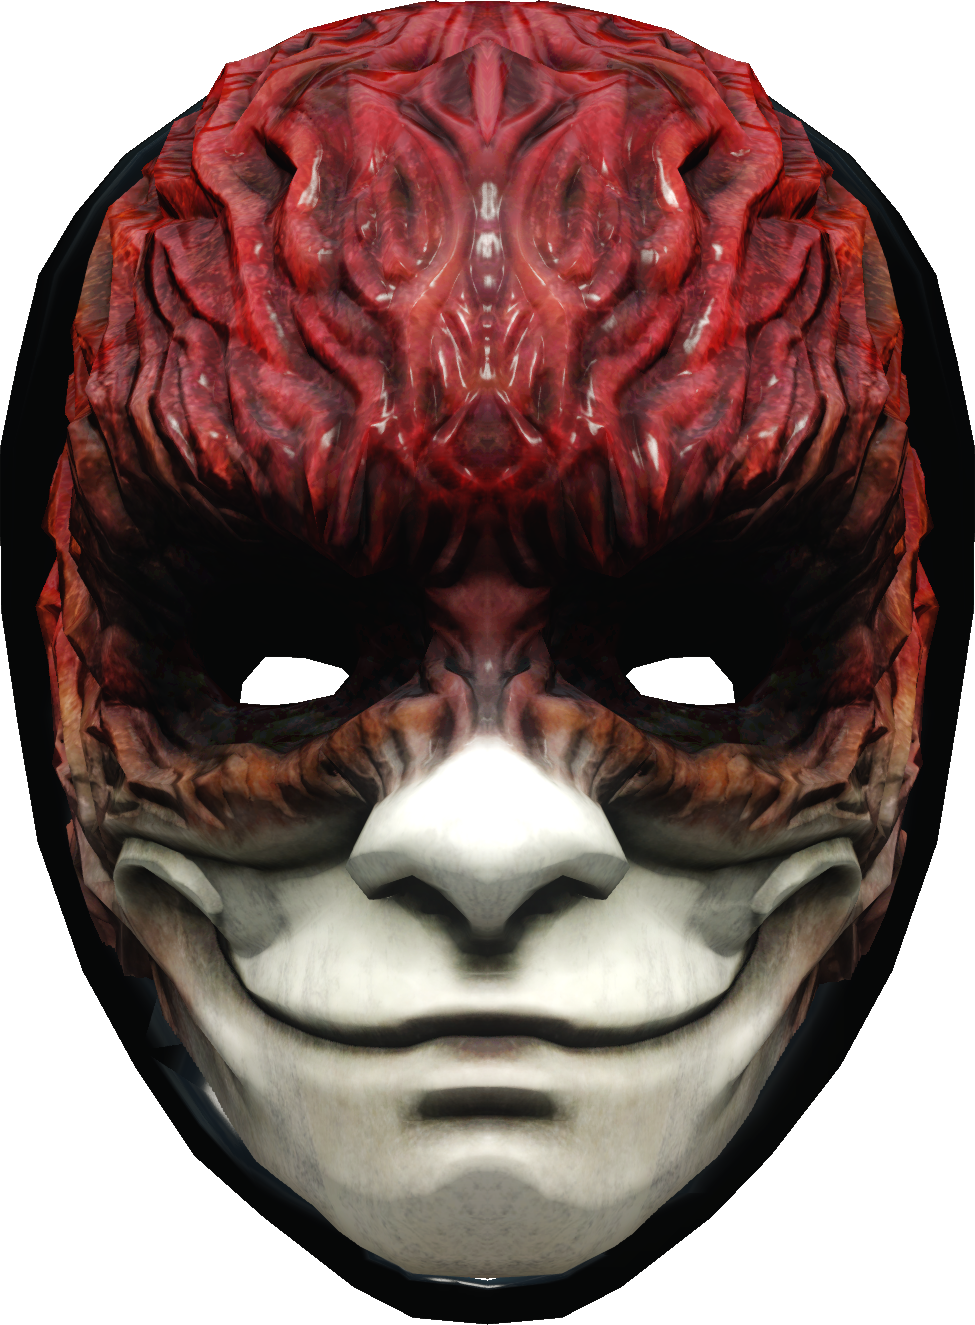 Transparent masks demon. The new trickster mask